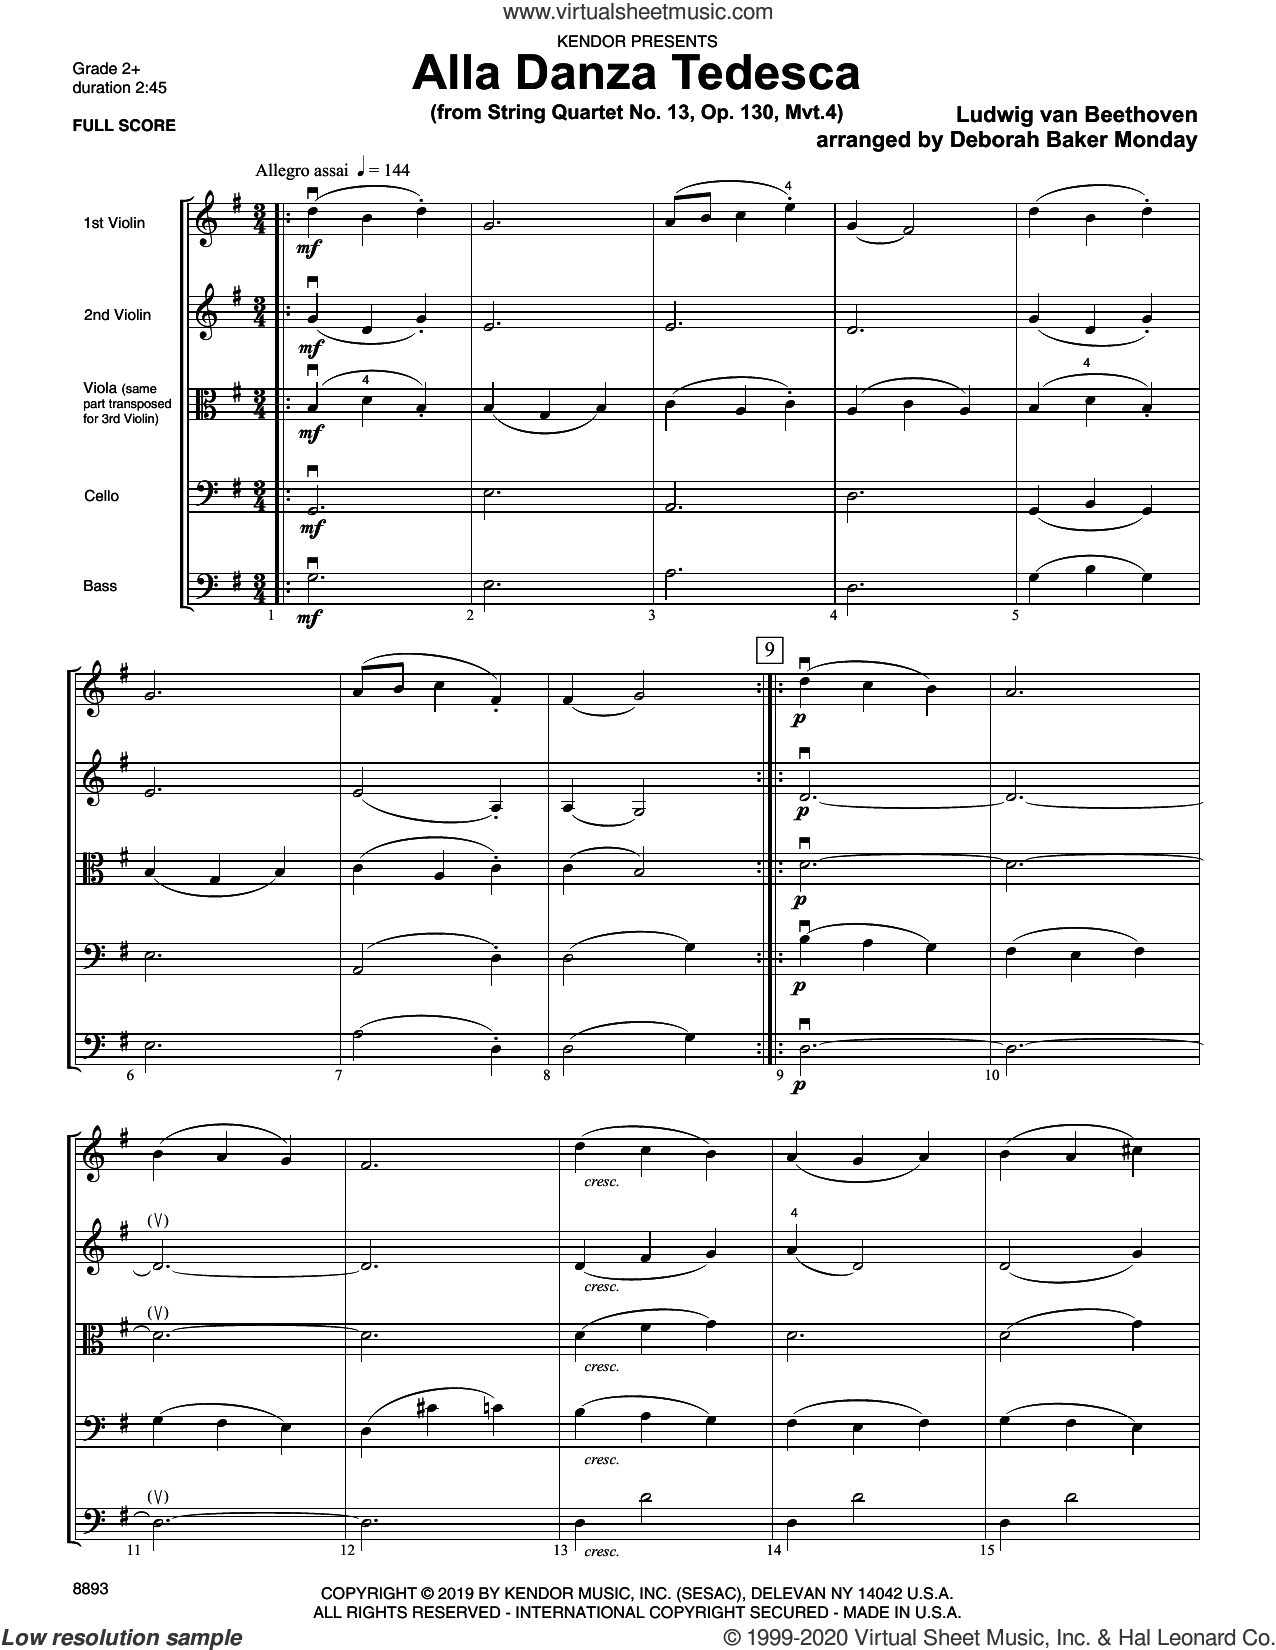 Alla Danza Tedesca (from String Quartet No. 13, Op. 130, Mvt. 4) (COMPLETE) sheet music for orchestra by Ludwig van Beethoven and Deborah Baker Monday, classical score, intermediate skill level